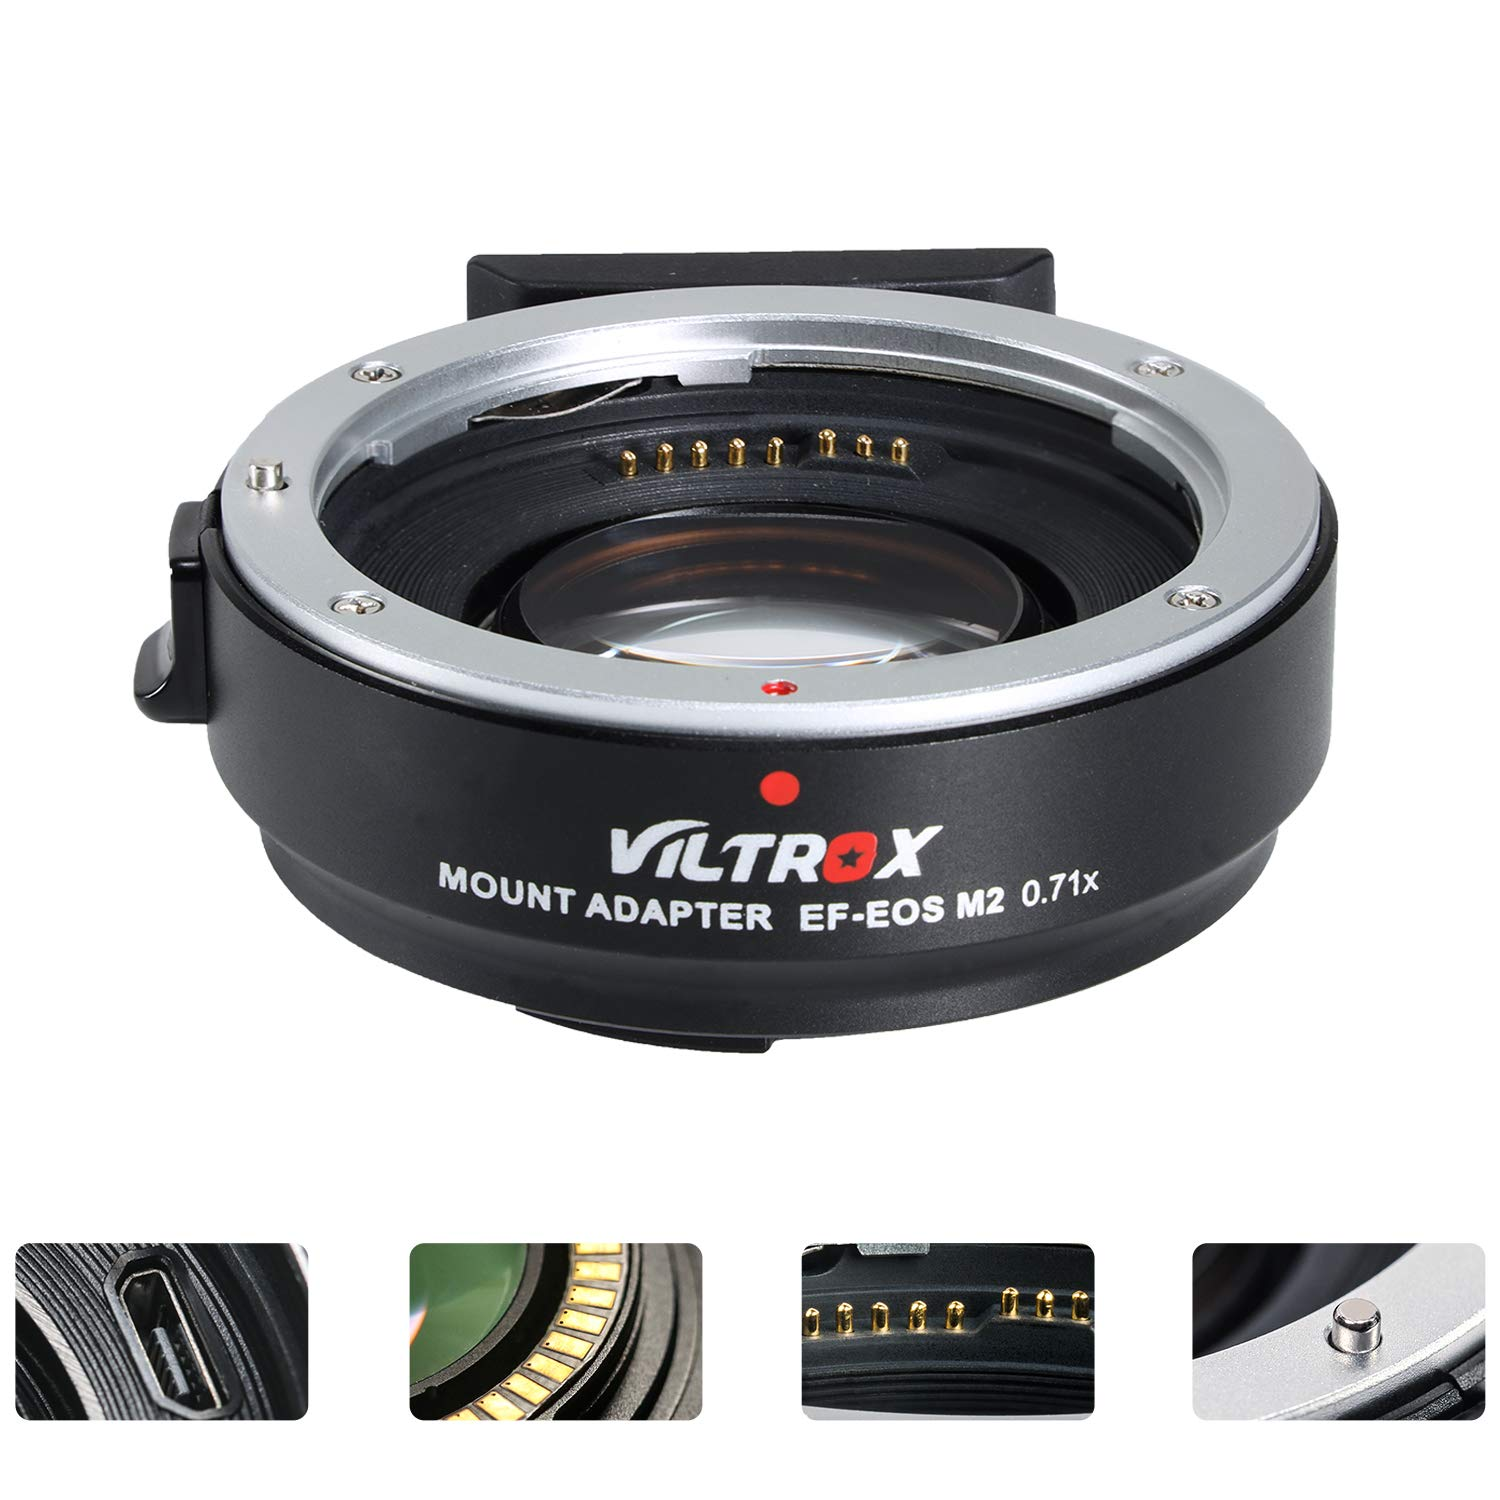 VILTROX EF-EOS M2 Lens Adapter 0.71x Speed Booster for Canon EF Lens to EOS EF-M Mirrorless Camera M3 M5 M6 M10 M50 M100 AF Auto Focus Reducer by VILTROX